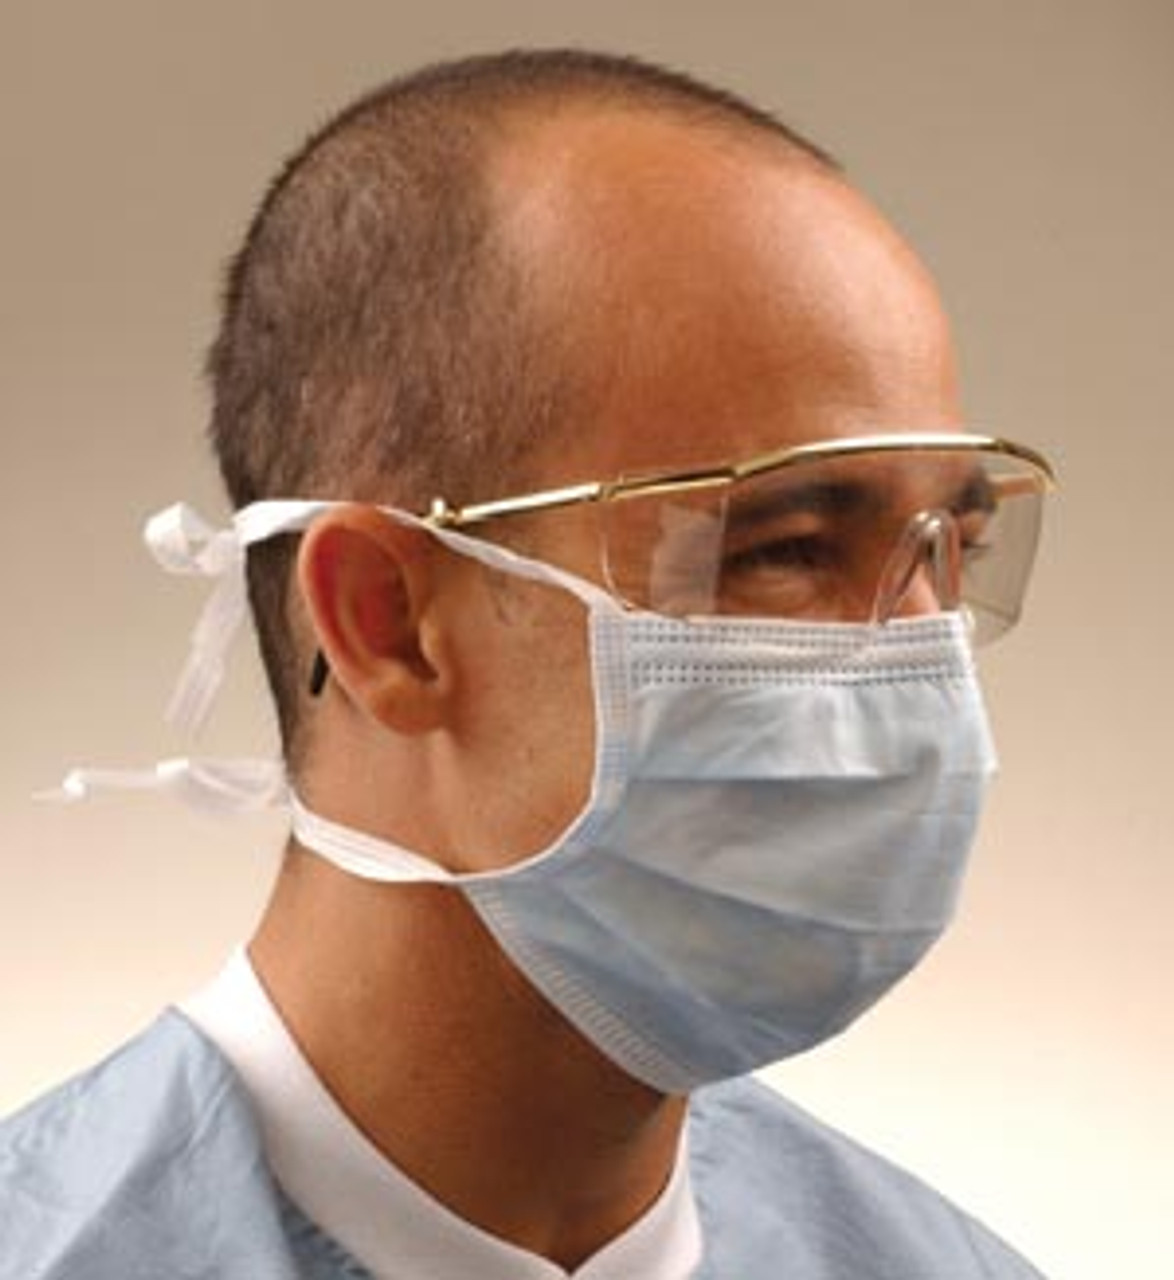 surgical mask 50 bl ue